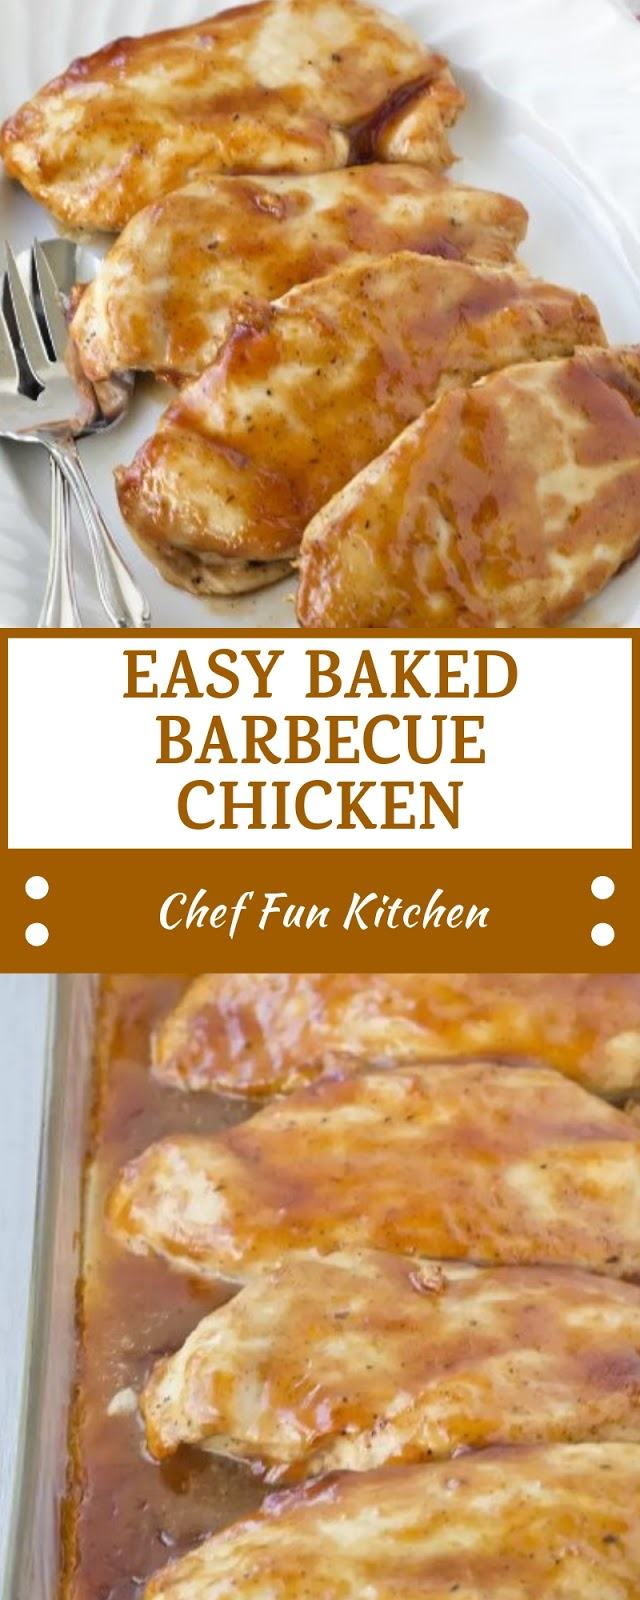 EASY BAKED BARBECUE CHICKEN